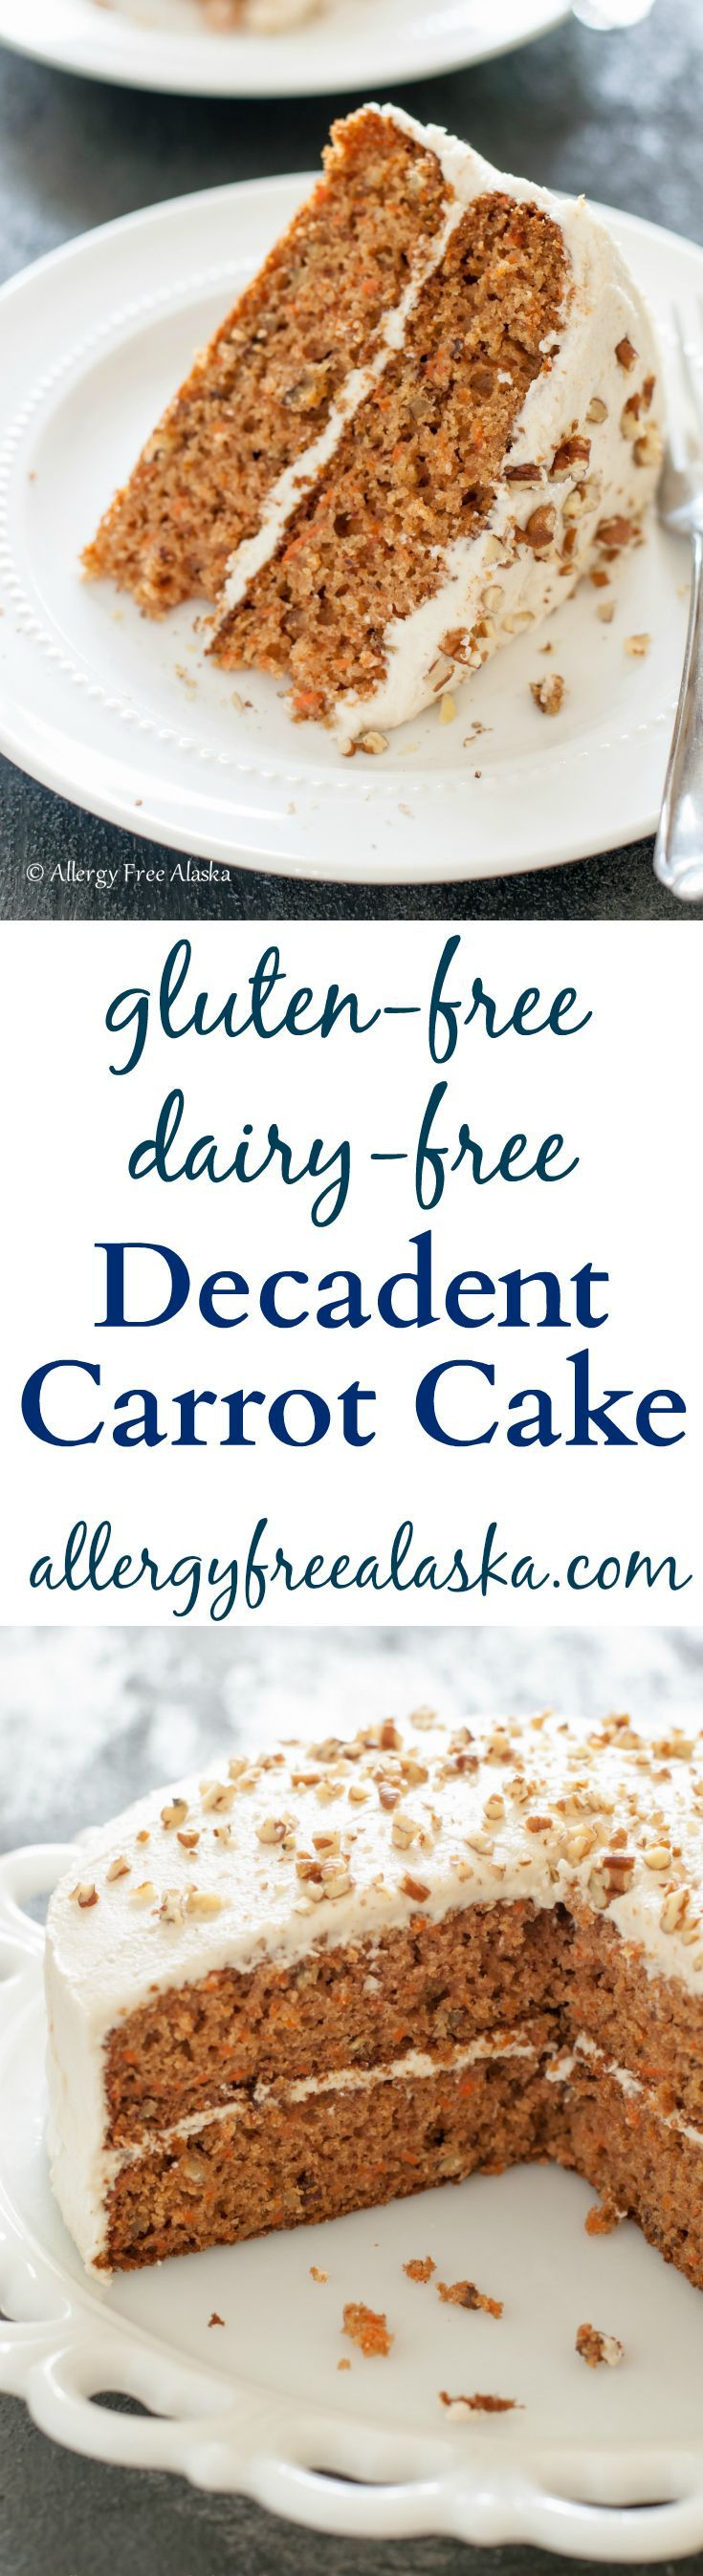 Absolutely delicious Gluten Free Dairy Free Decadent Carrot Cake from Allergy Free Alaska. I LOVE this cake!